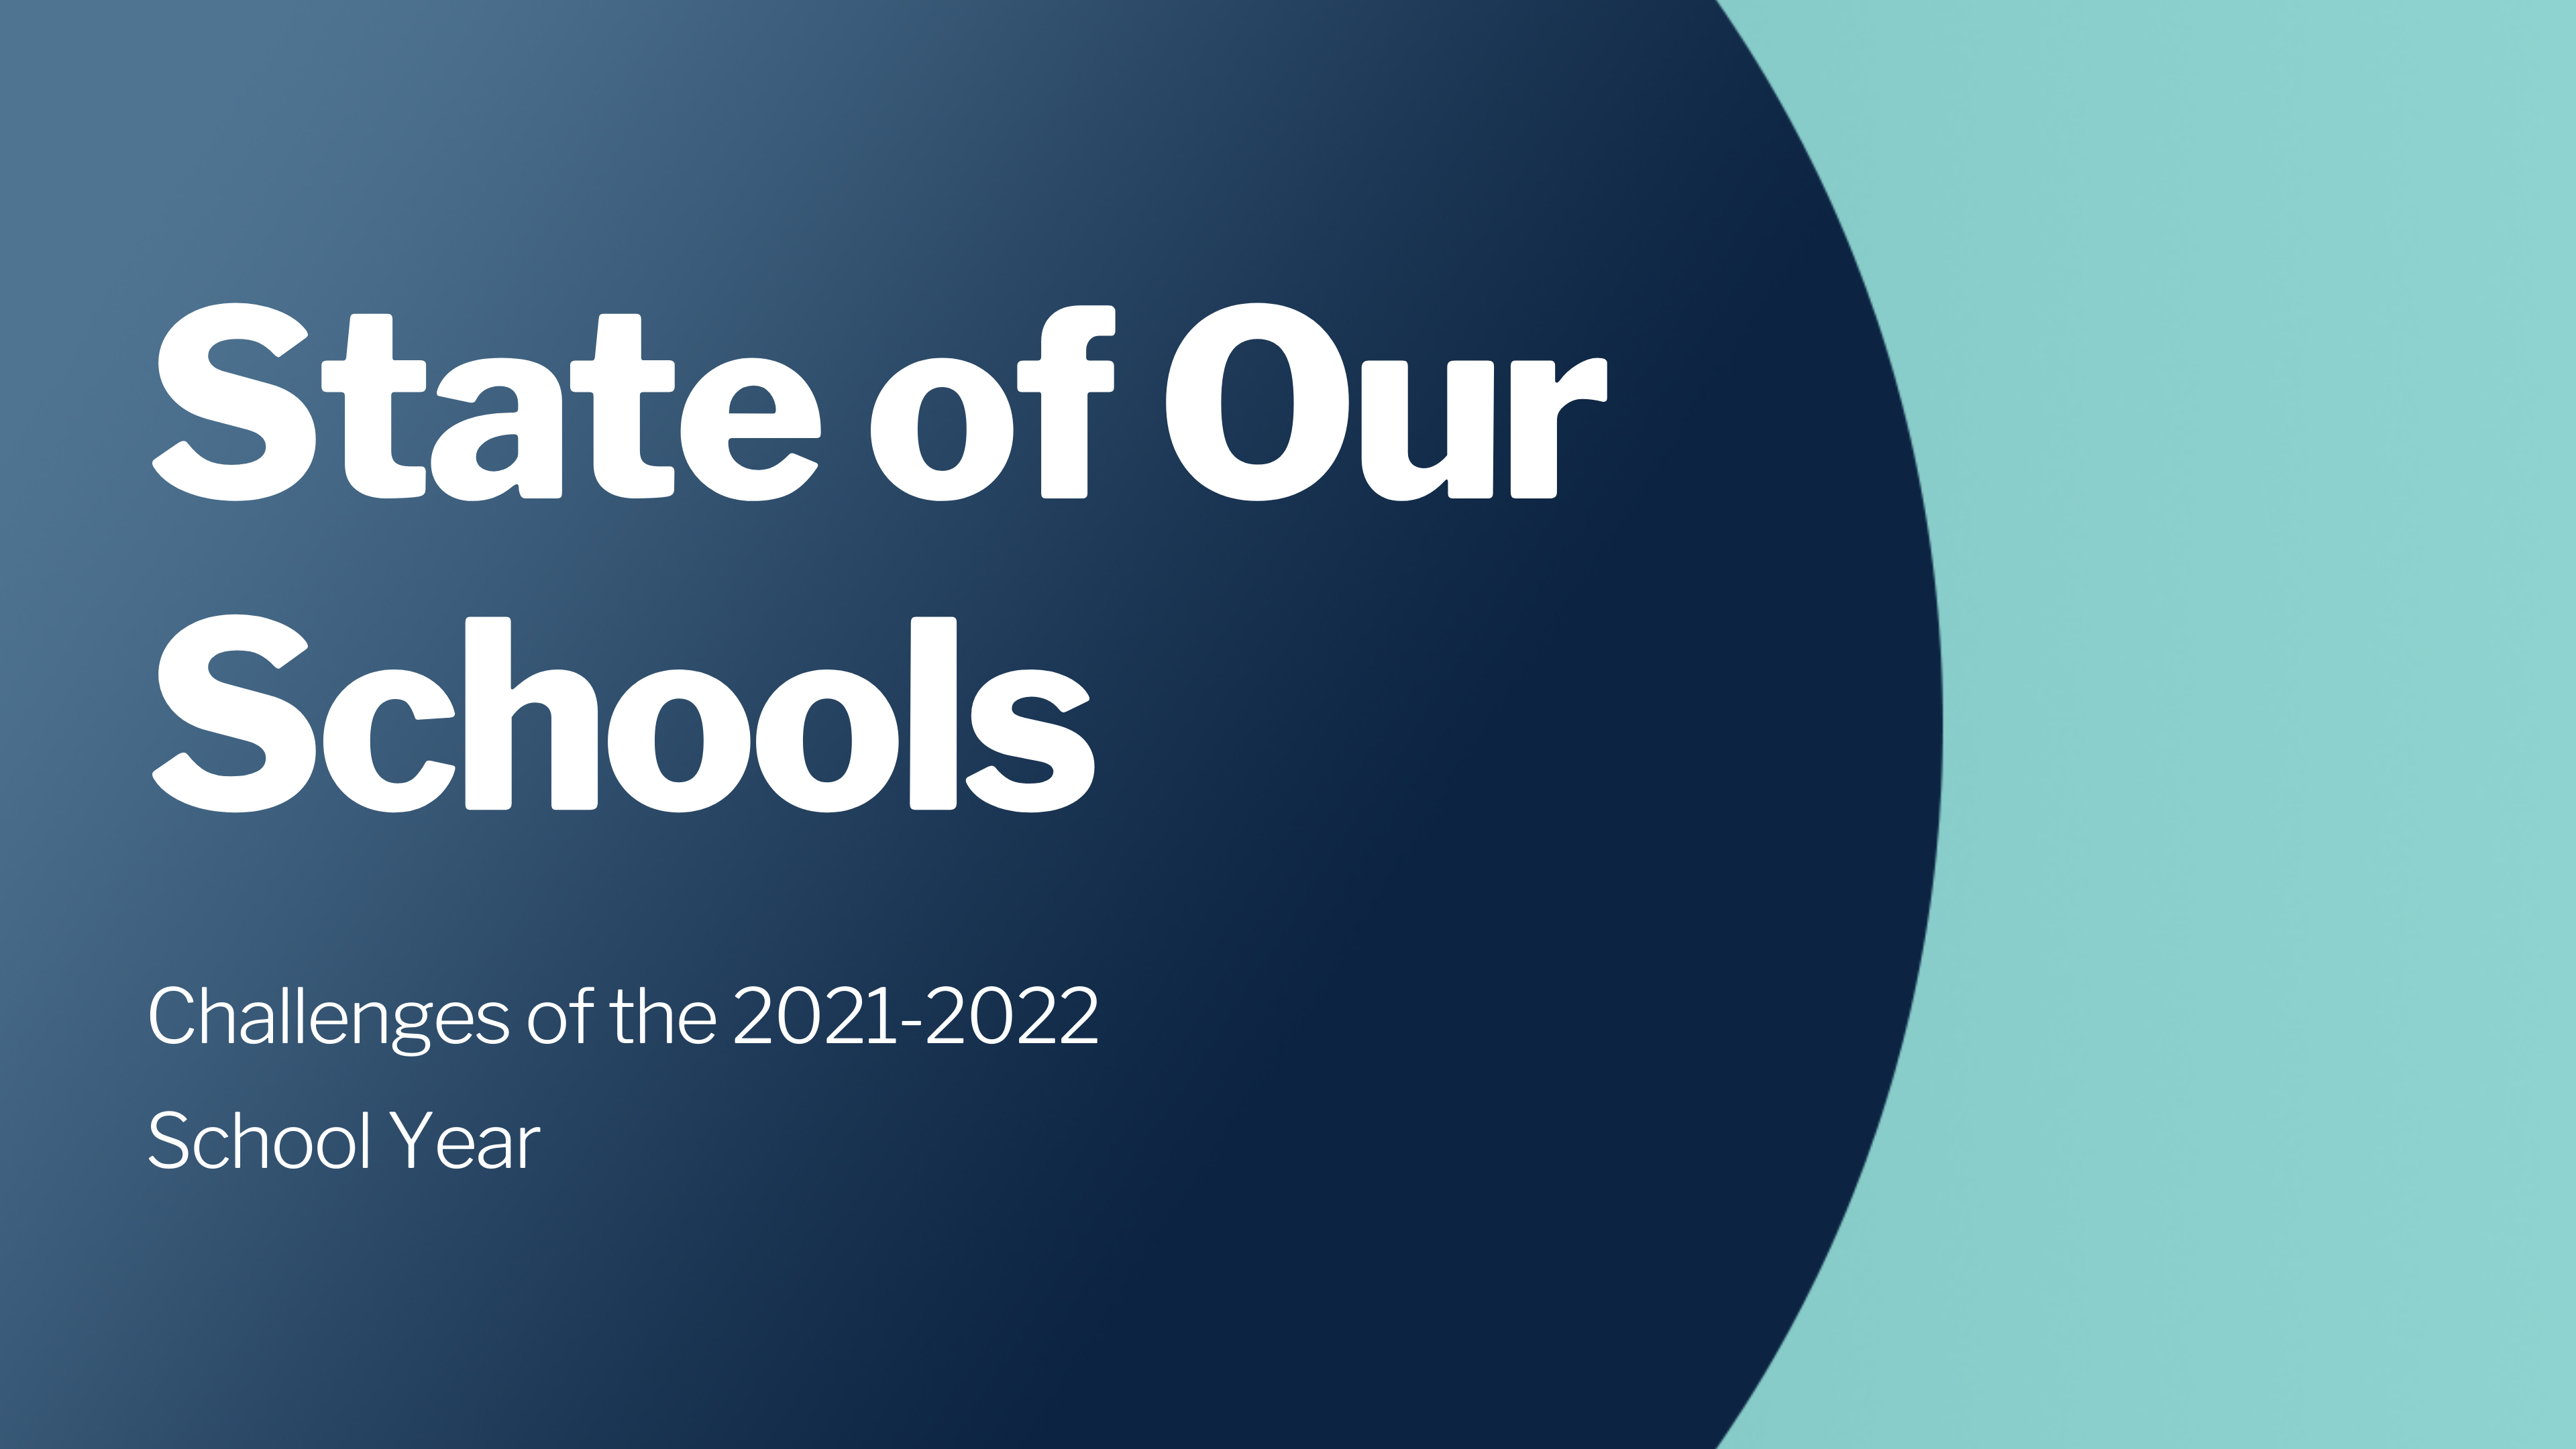 State of Our Schools_ Challenges of the 2021-2022 School Year